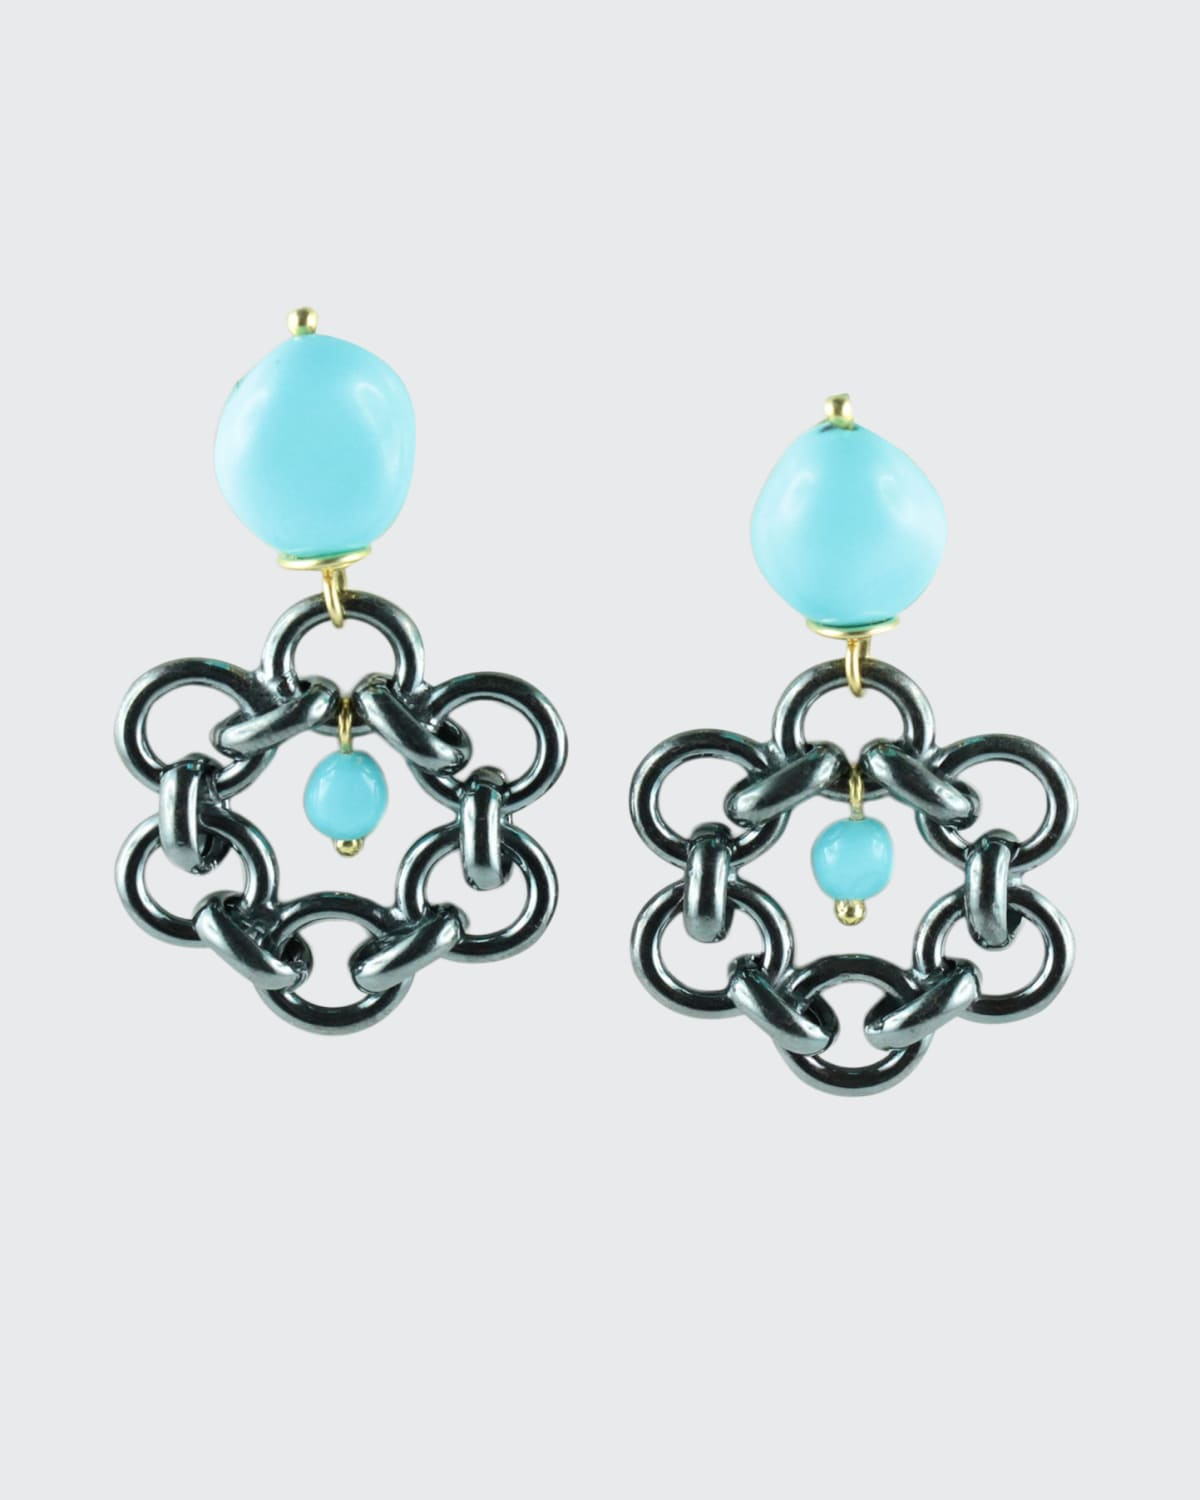 Black Silver Flat Link Circles Earrings w/ Turquoise Paste Top Center Gold